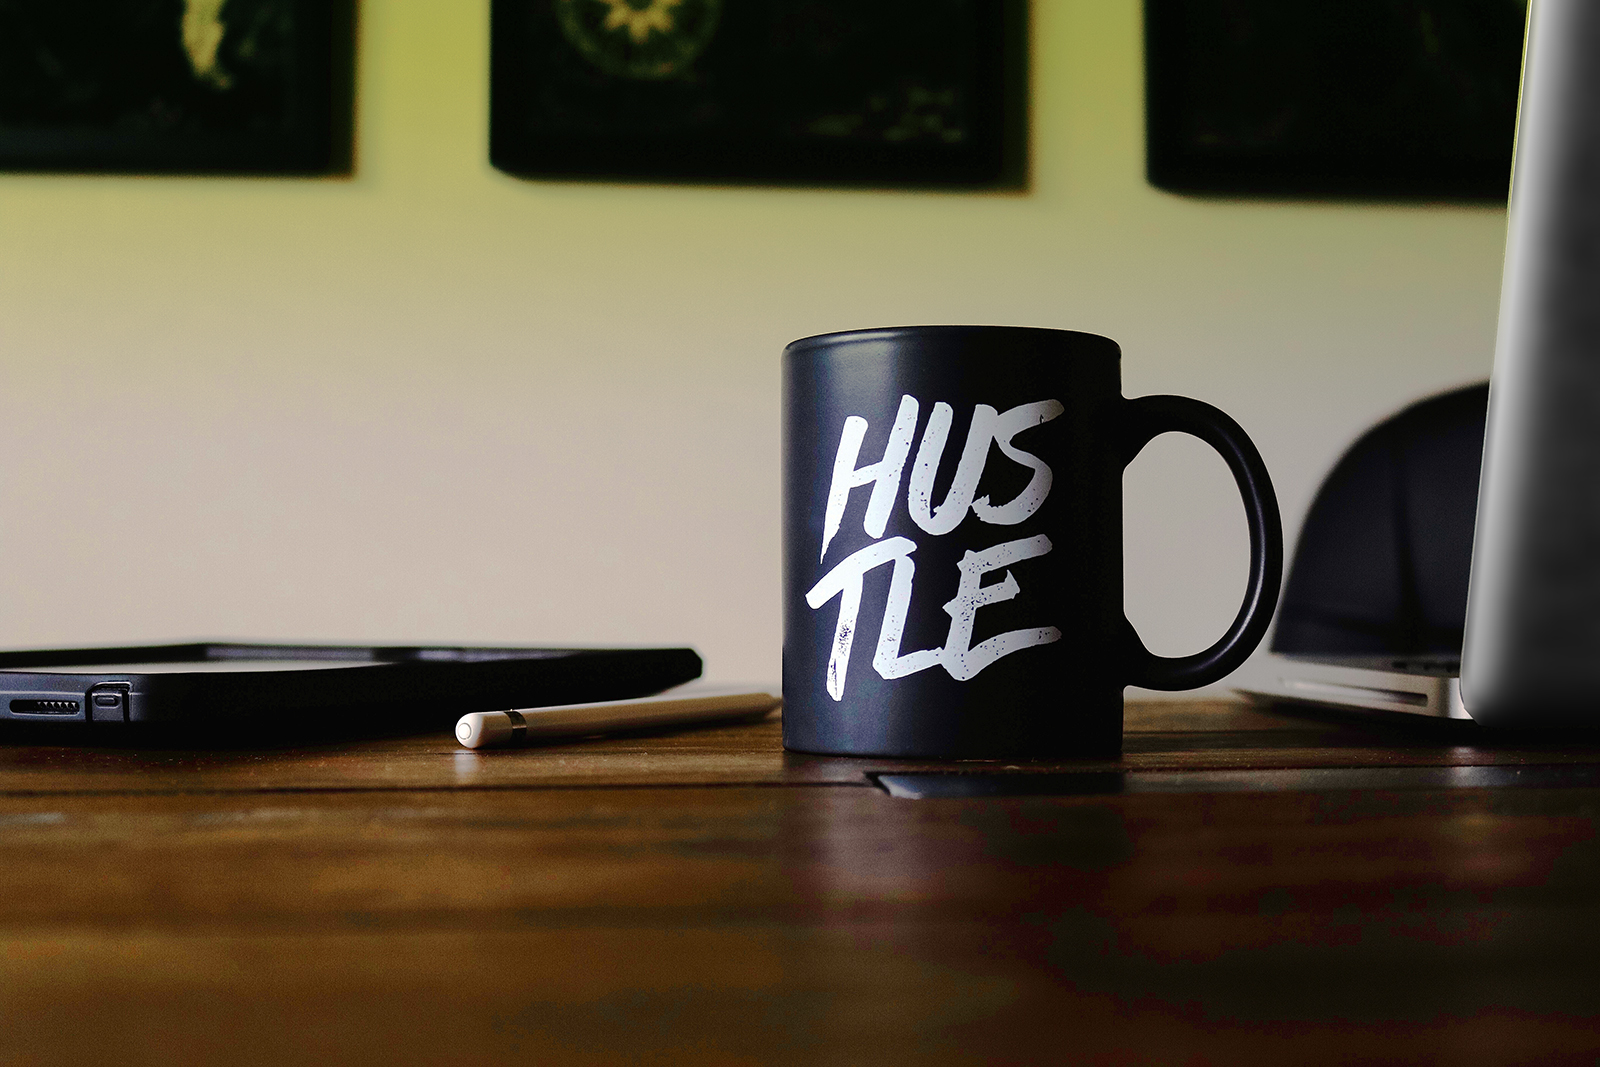 Side Hustle Real Talk: Time management, burnout signs, and real solutions